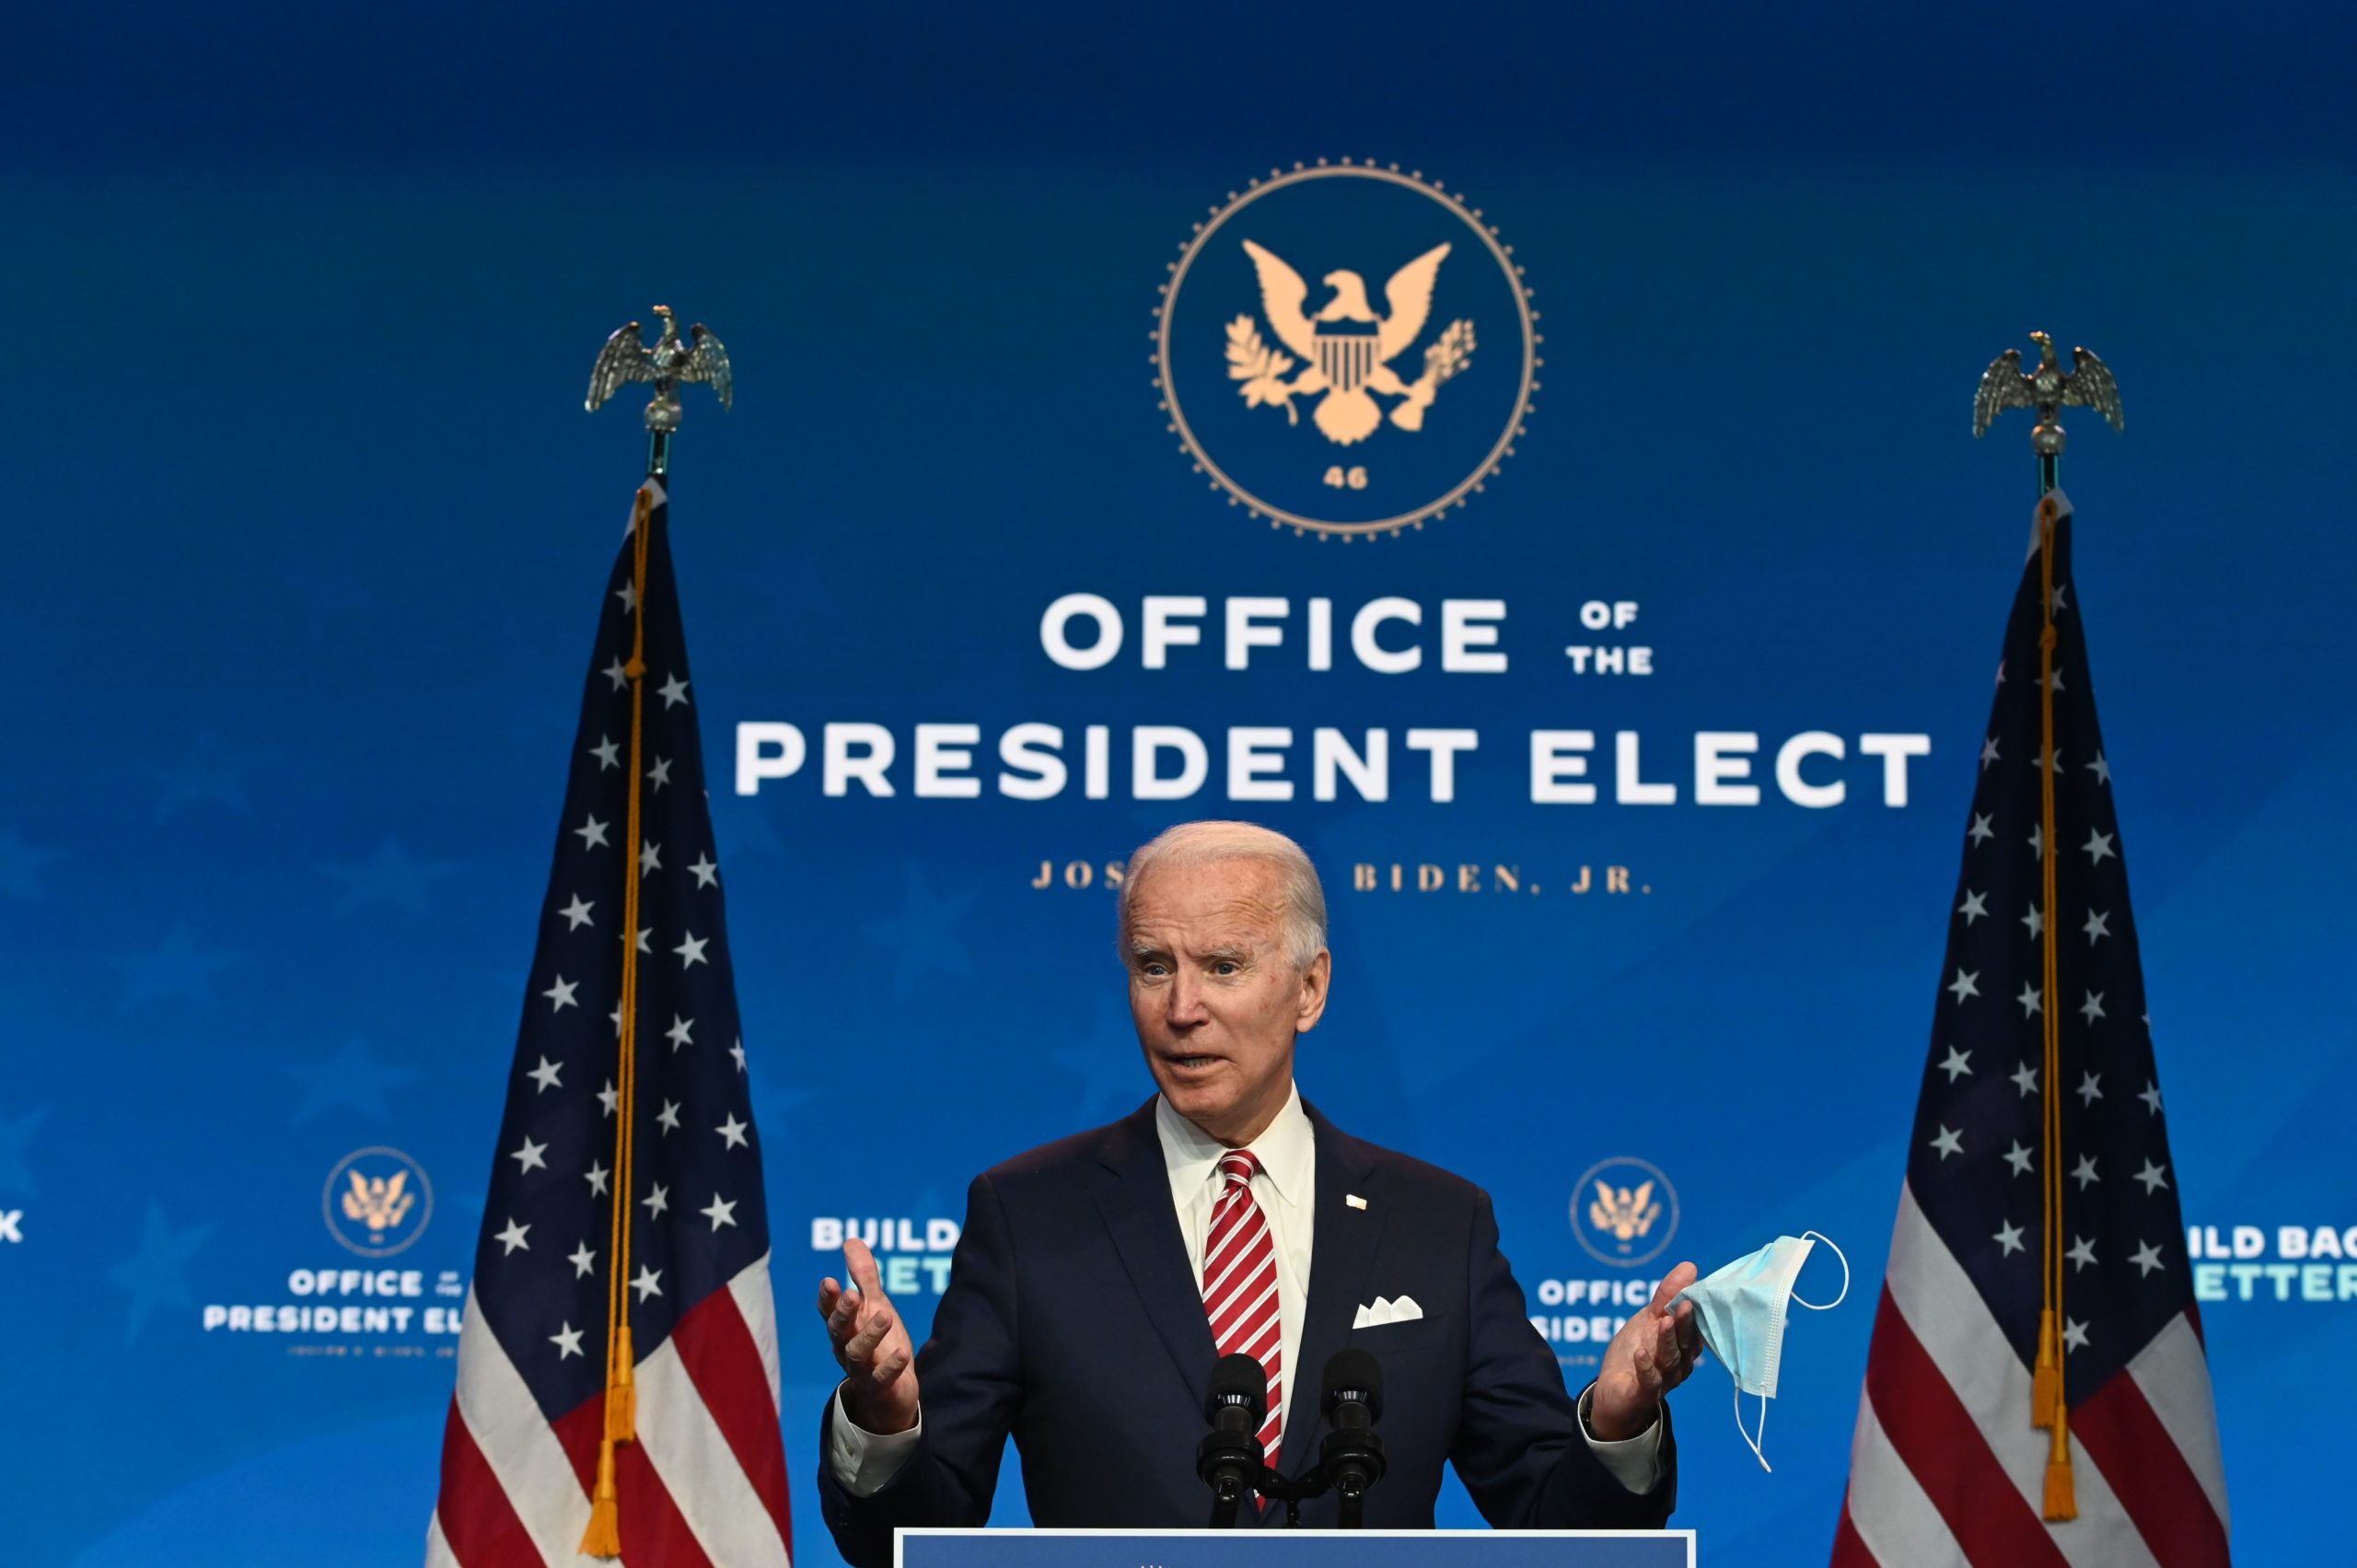 """US President-elect Joe Biden speaks during a press conference at The Queen in Wilmington, Delaware on November 16, 2020. - US President-elect Joe Biden expressed frustration on November 16, 2020 about Donald Trump's refusal so far to cooperate on the White House transition process, saying """"more people may die"""" without immediate coordination on fighting the coronavirus pandemic. (Photo by ROBERTO SCHMIDT/AFP via Getty Images)"""